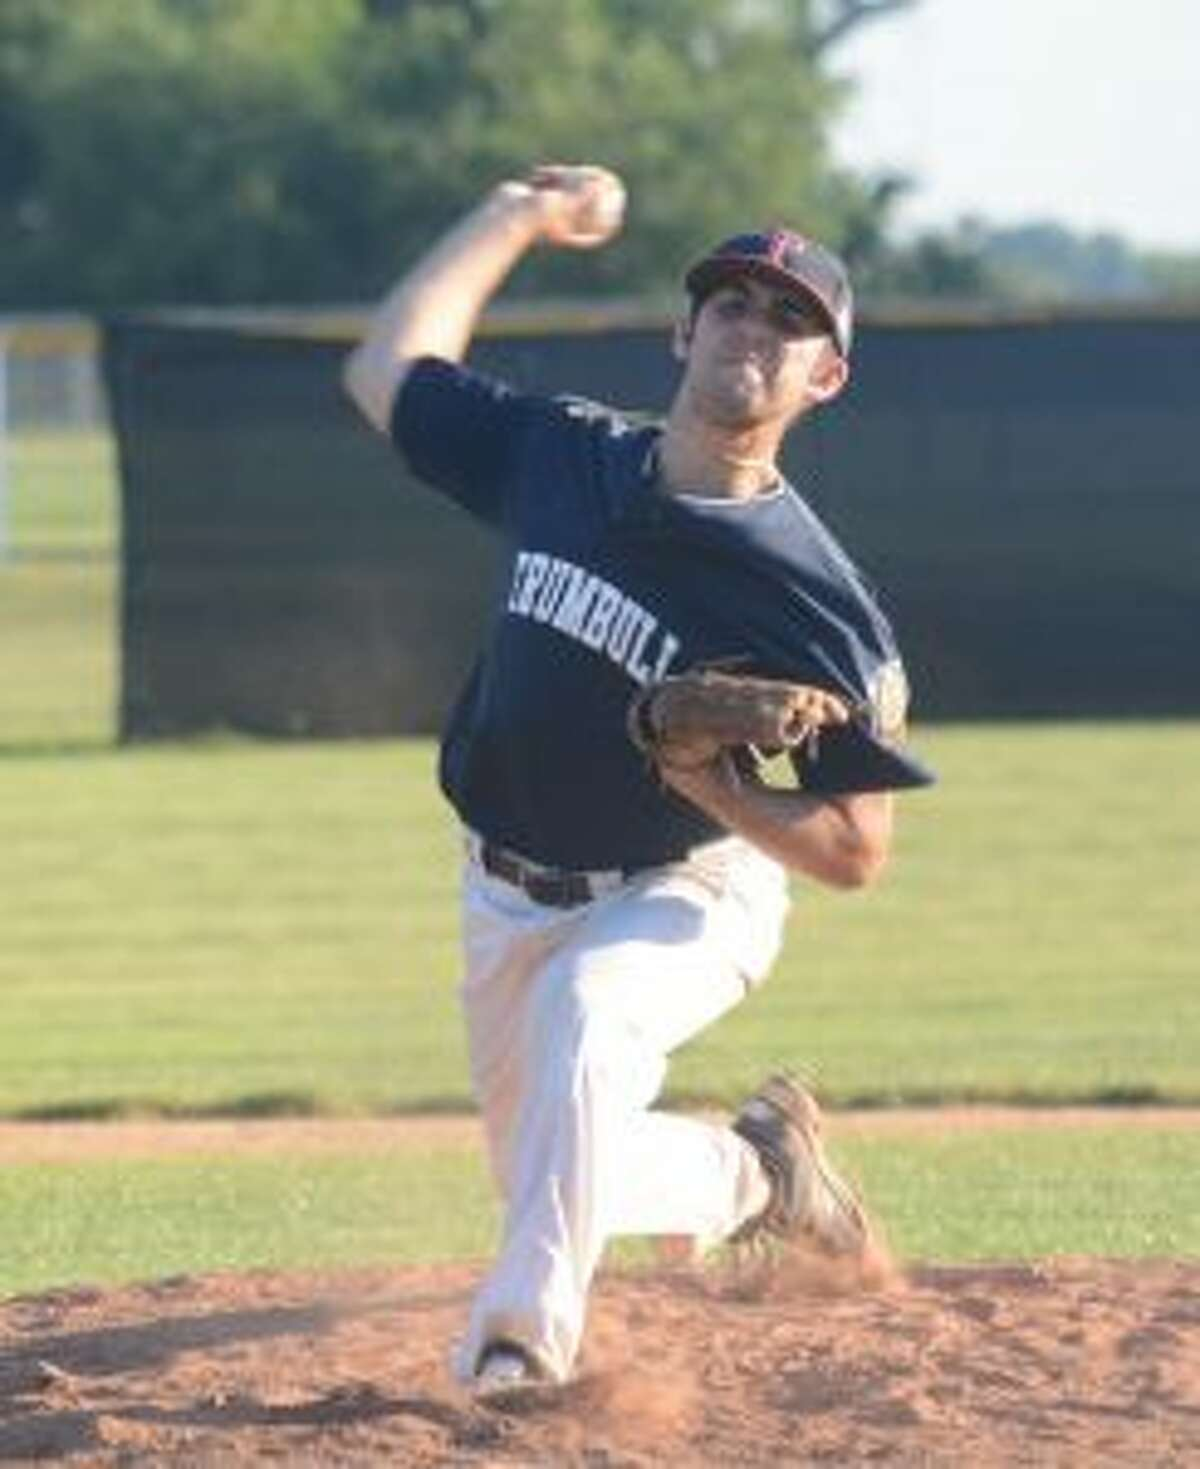 Jared Rosen blanked Fairfield, 11-0, on Monday, striking out five. - Andy Hutchison photos